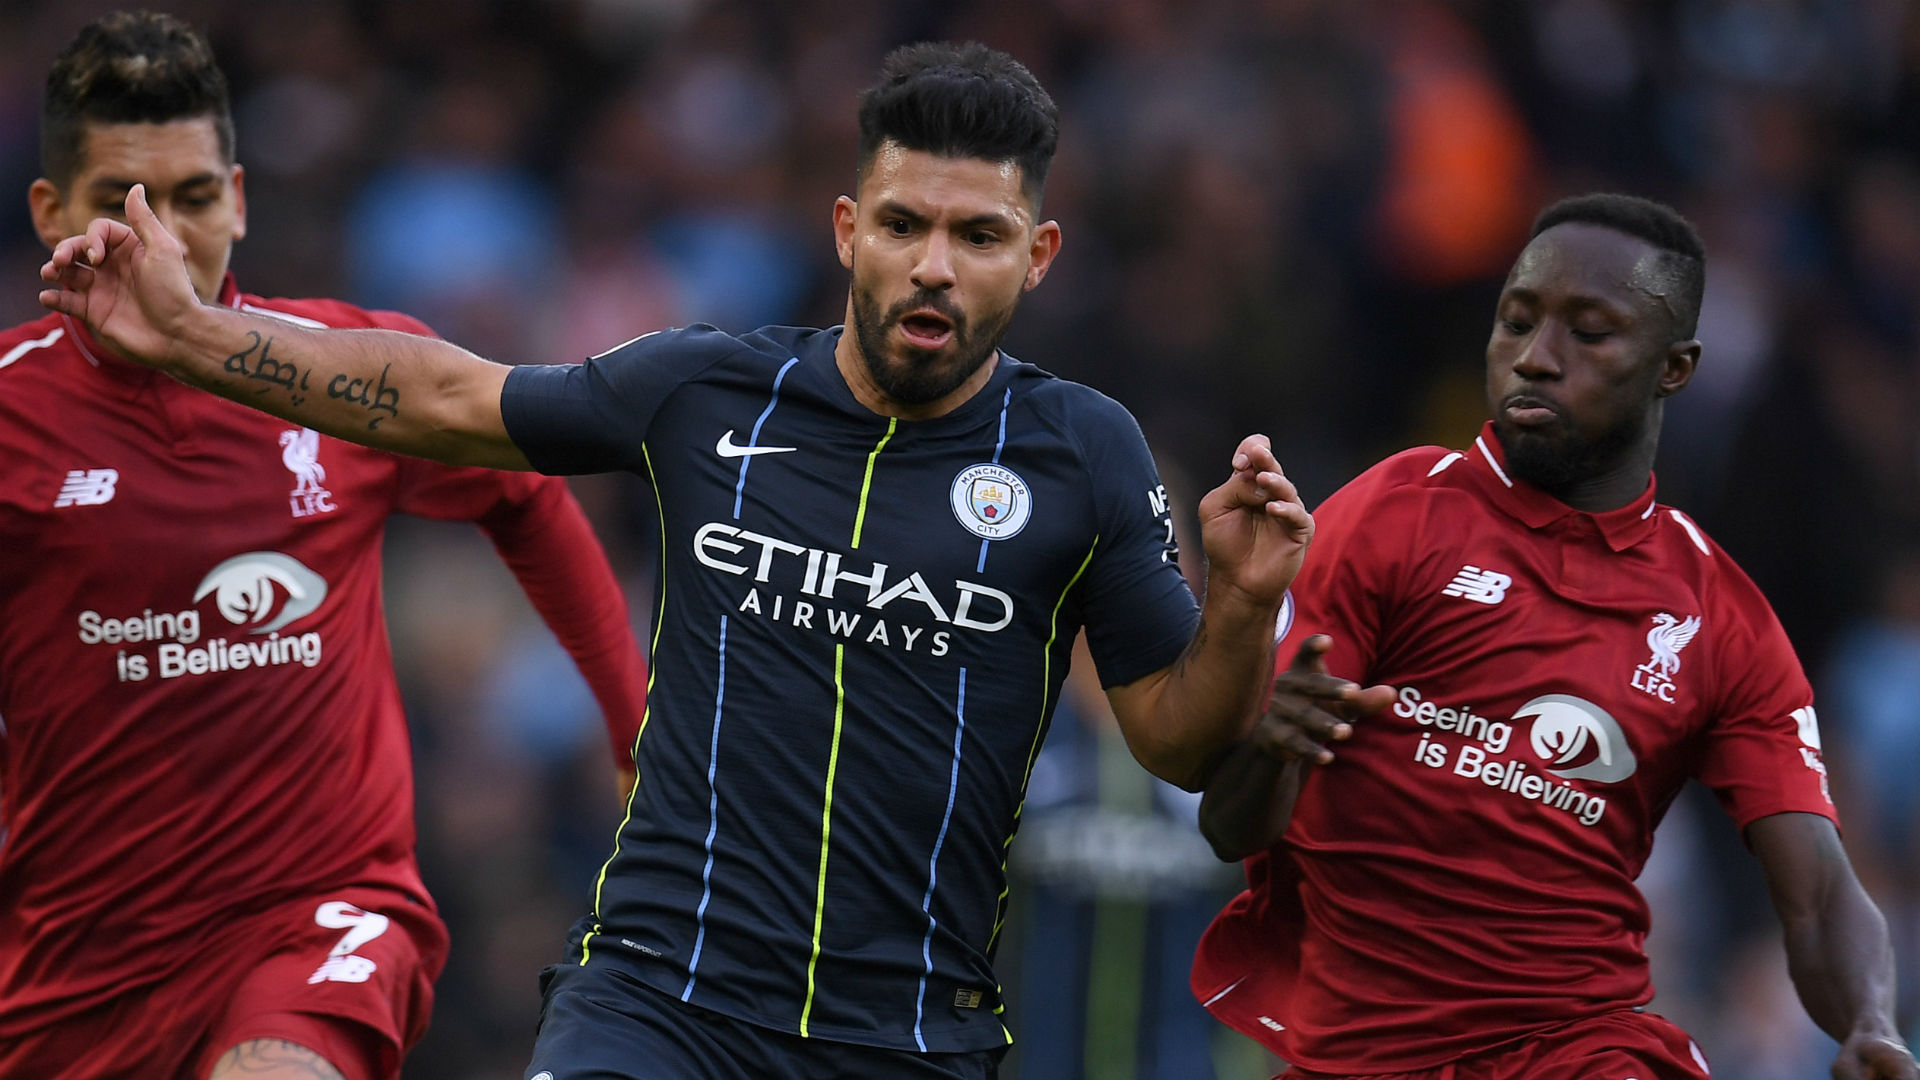 Premier League stats: Manchester City could improve on last season, says Gracenote